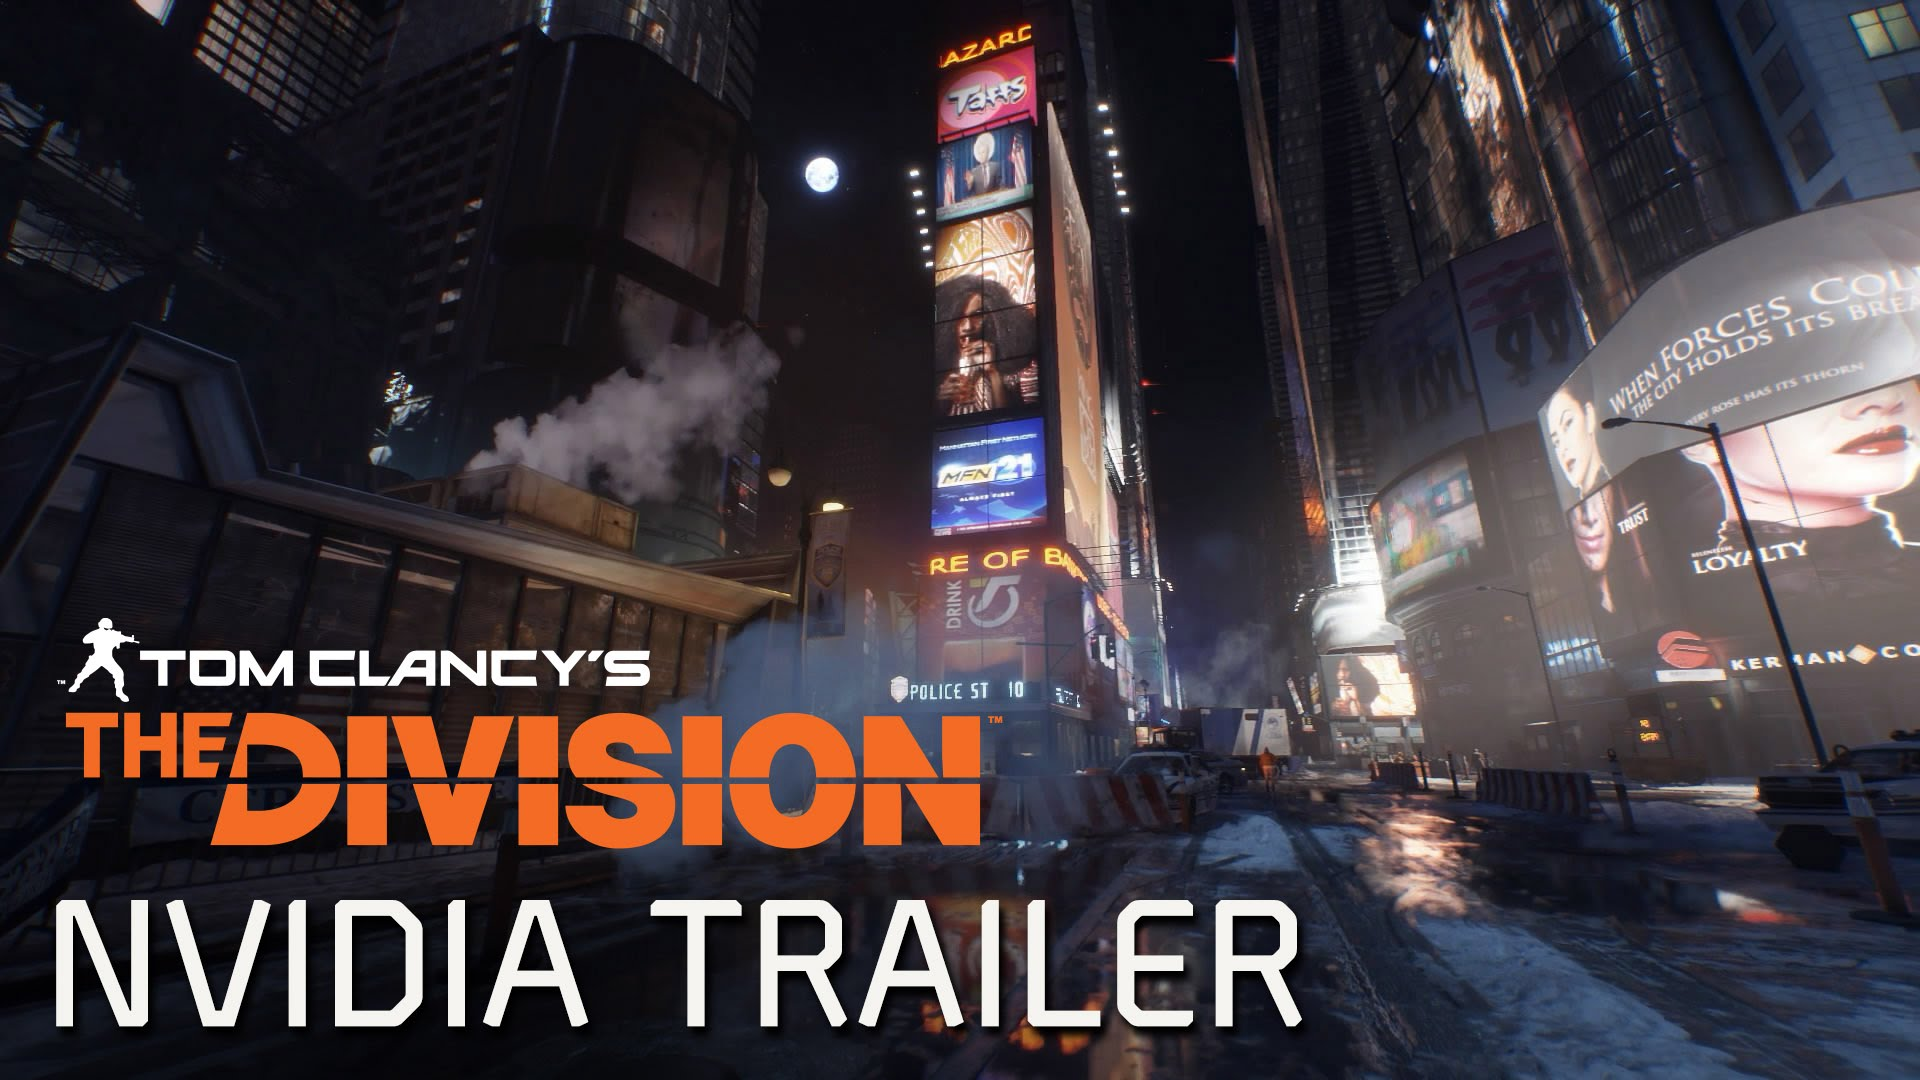 Tom Clancy's The Division – Nvidia GameWorks Trailer